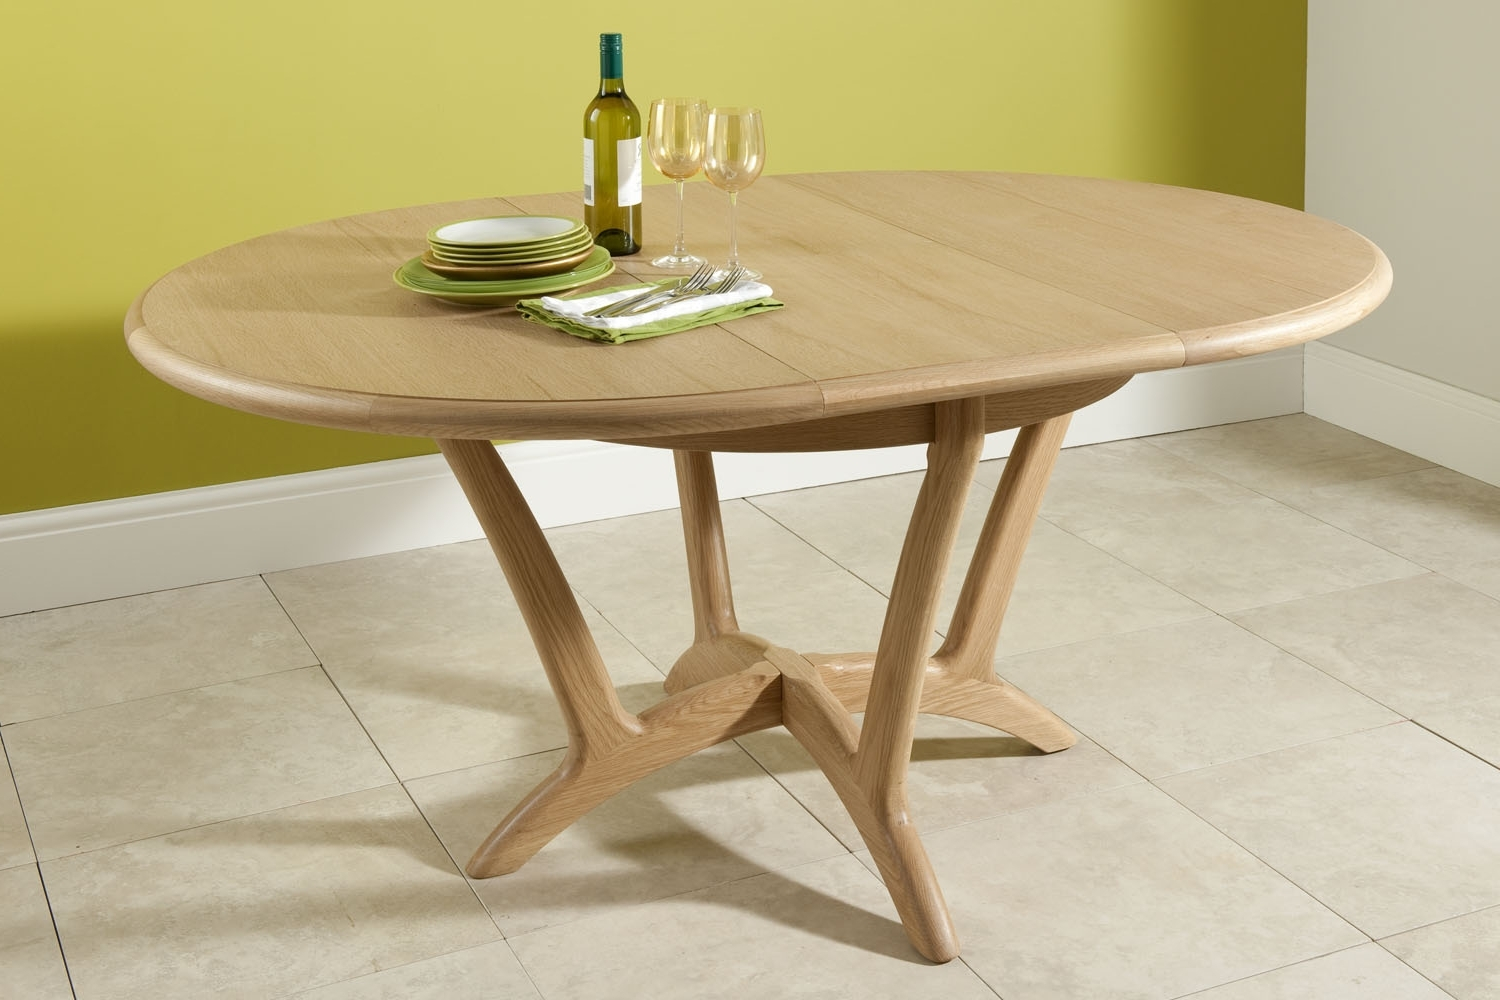 Extending Round Dining Tables Intended For Recent Shetland Round Extending Dining Table Cardiff And Swansea (View 5 of 25)